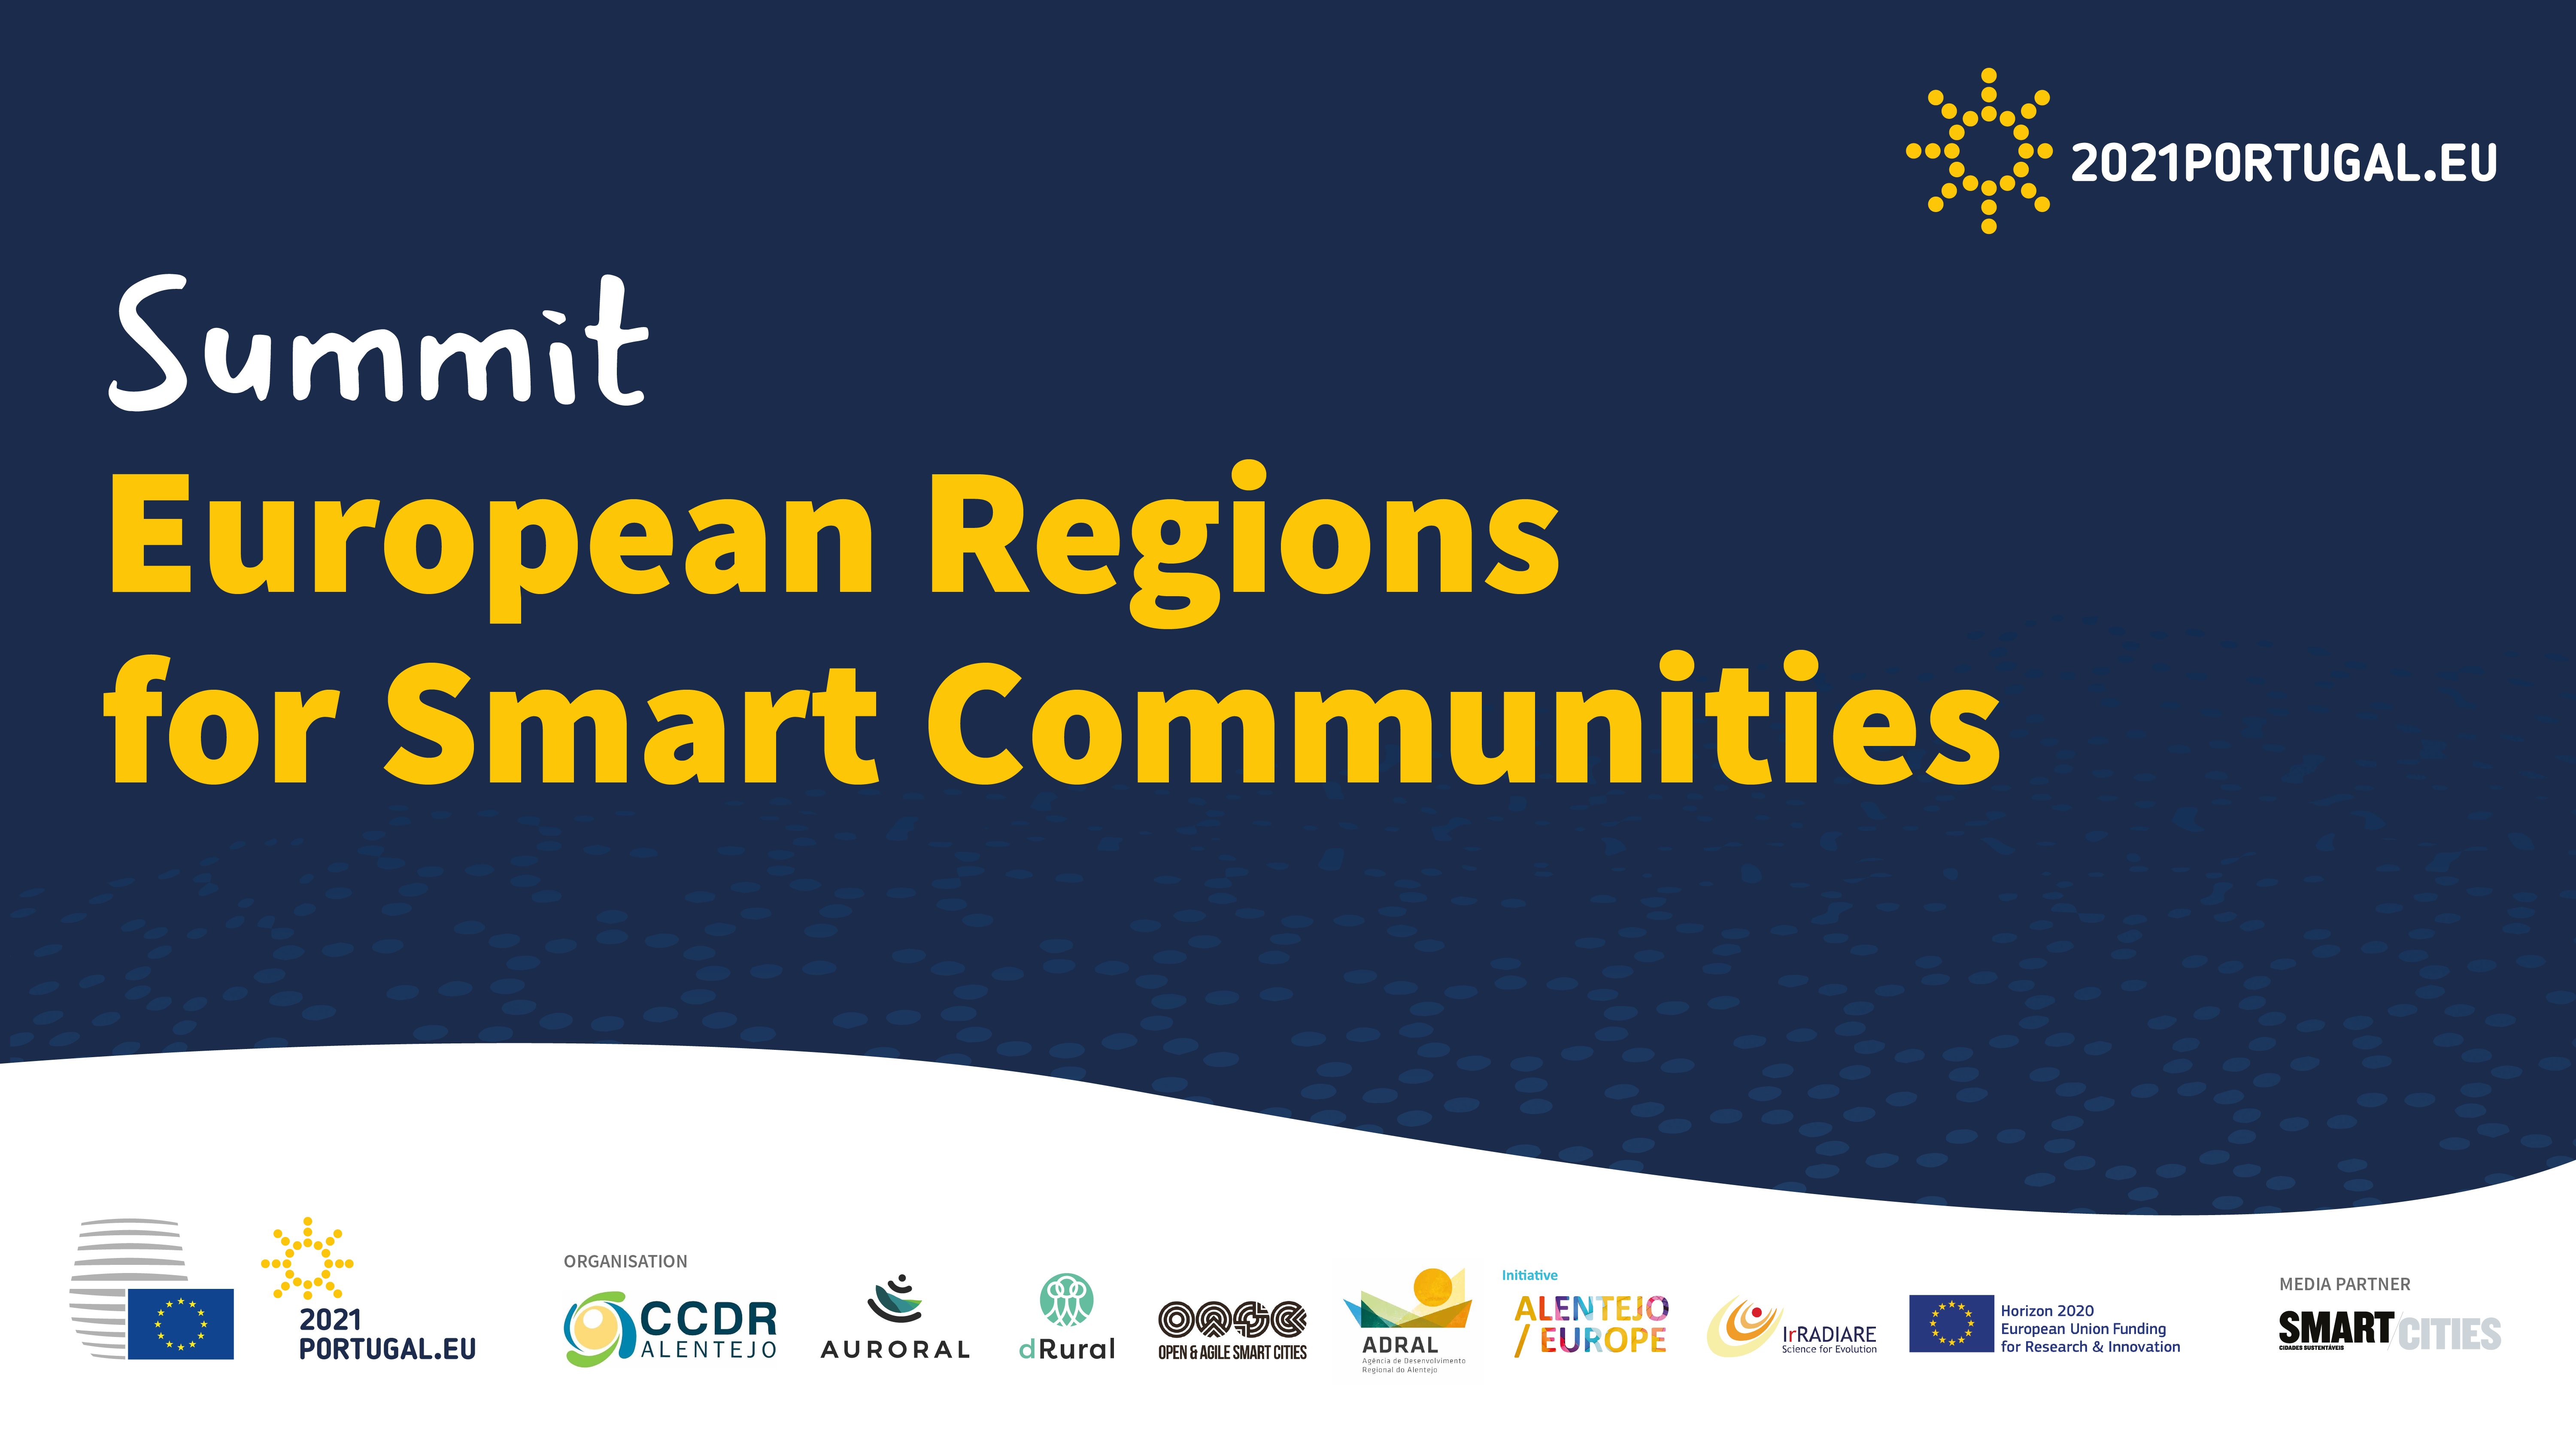 The European Regions for Smart Communities Summit